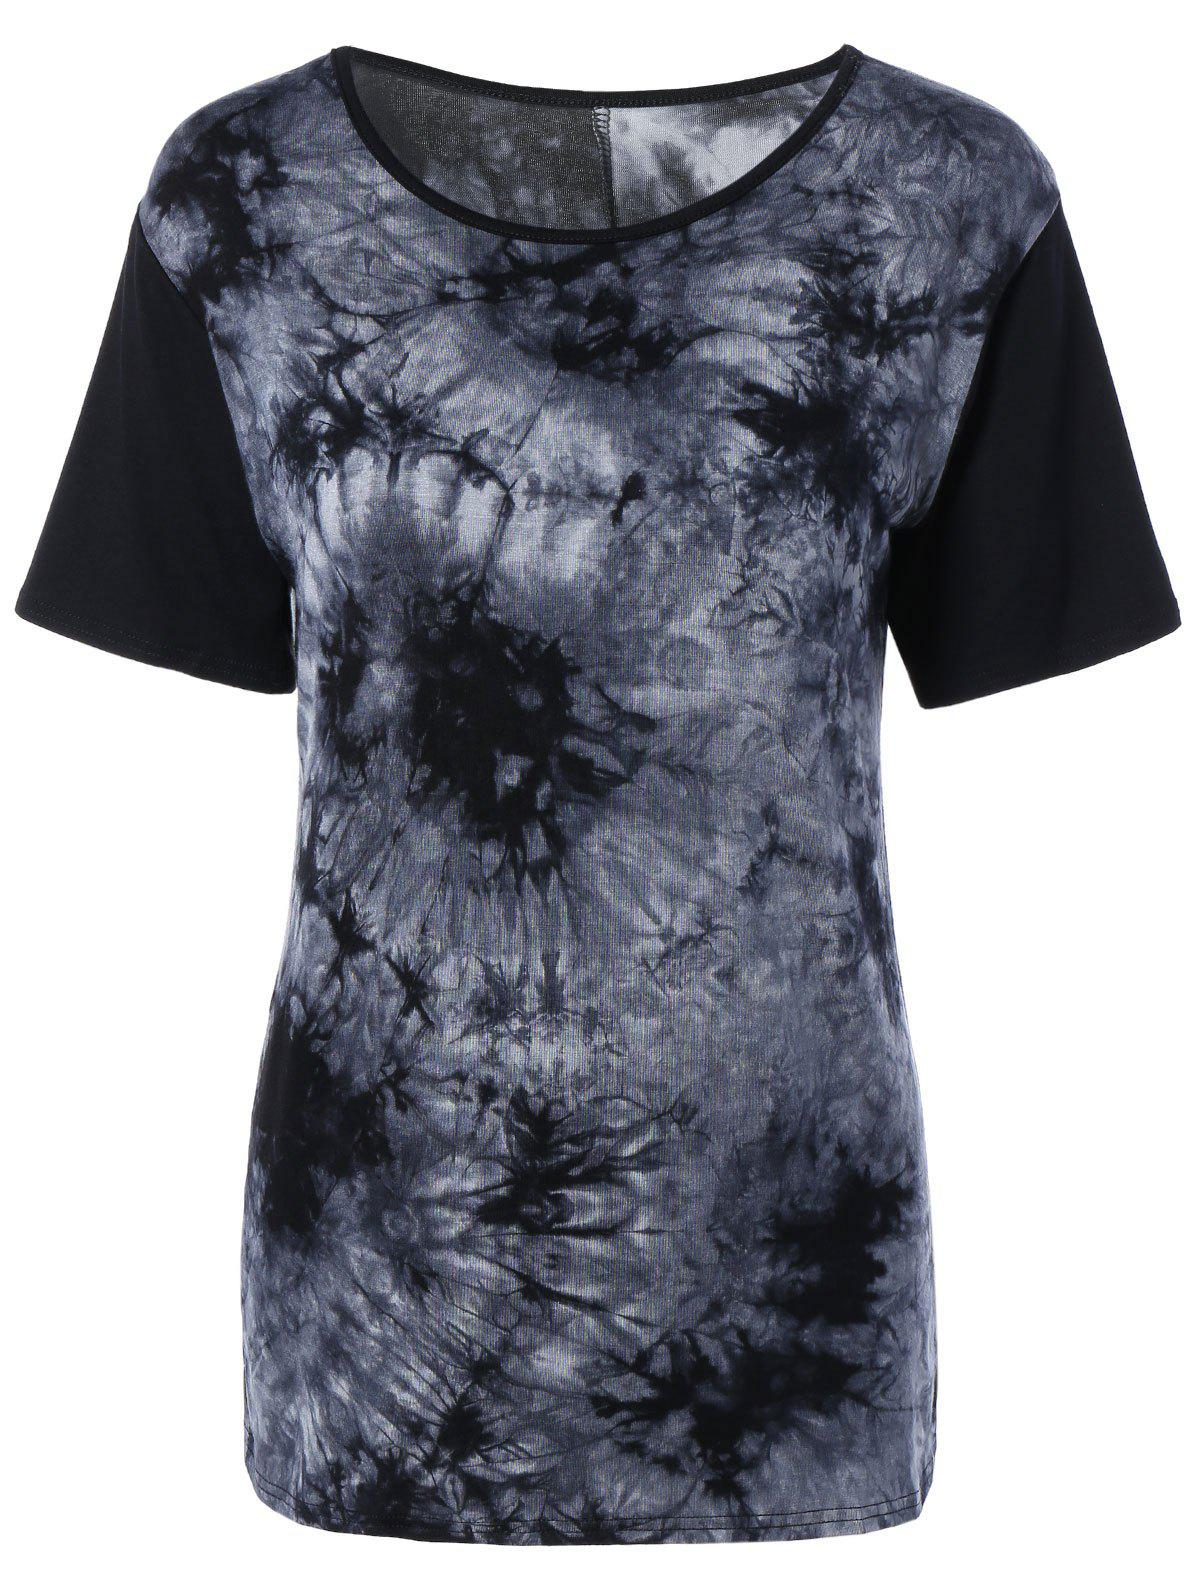 Elegant Tie Dye Print Comfortable Fitted T Shirt